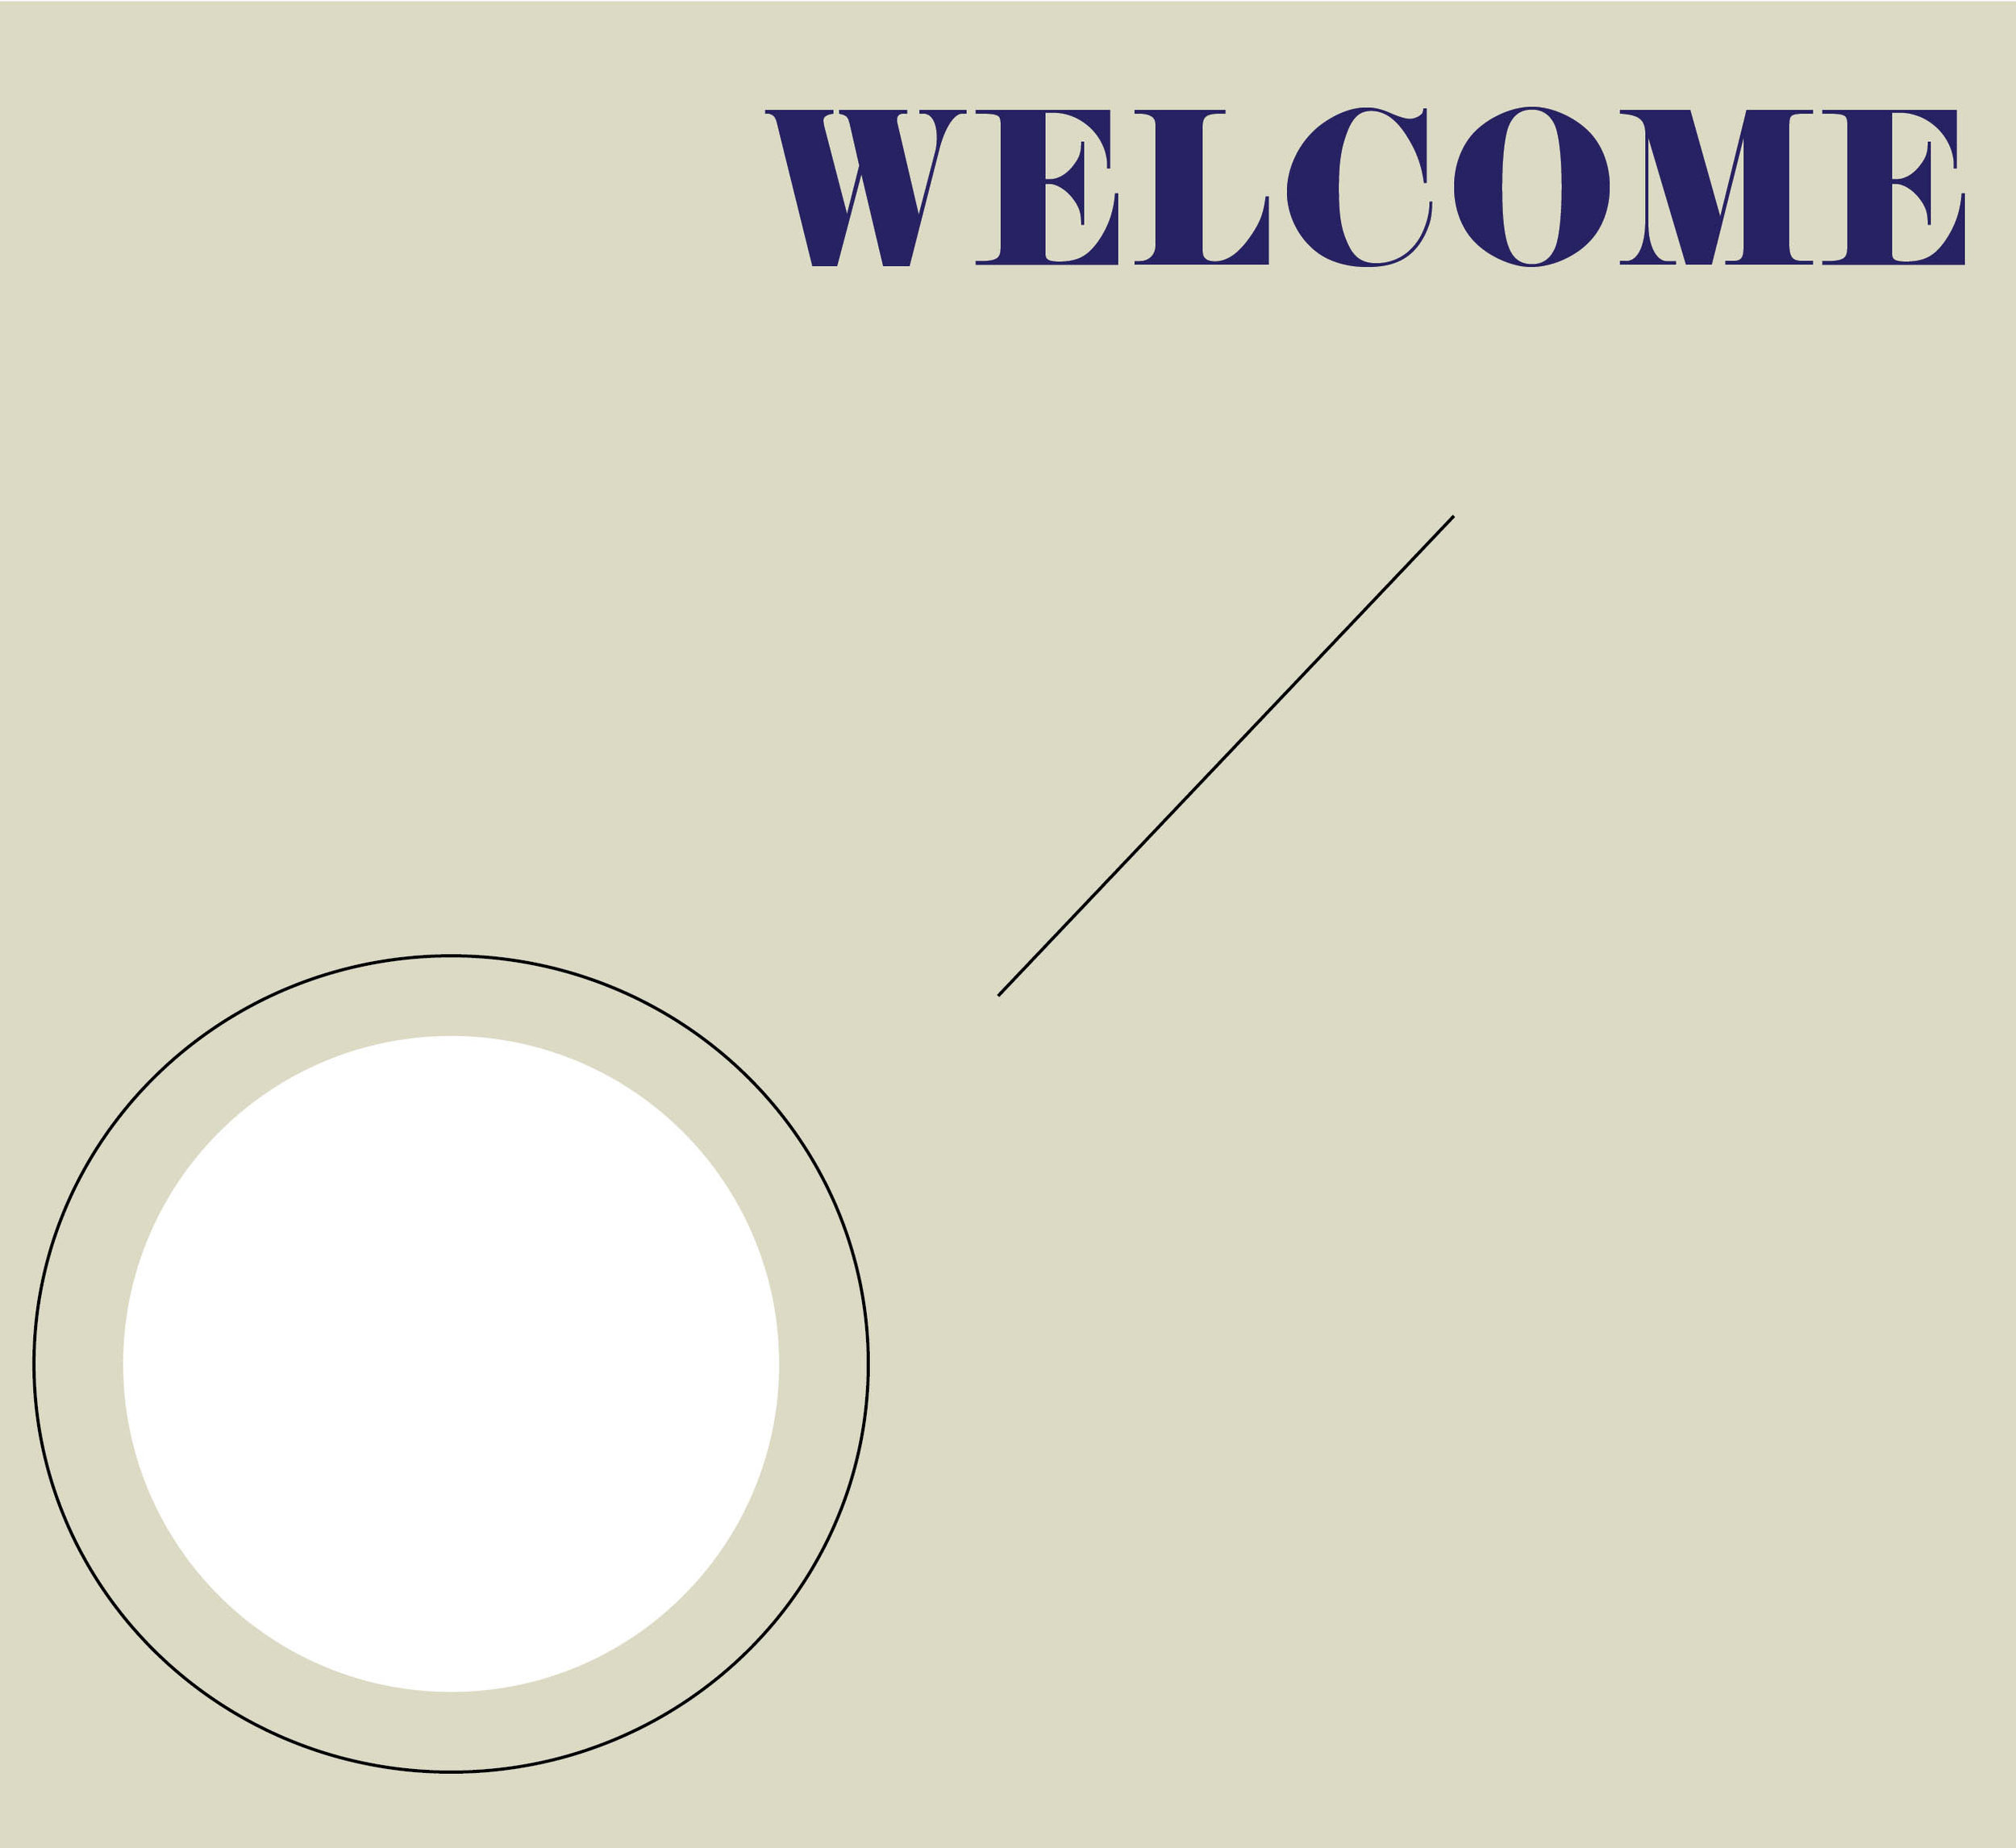 welcome email (1 of 1).jpg